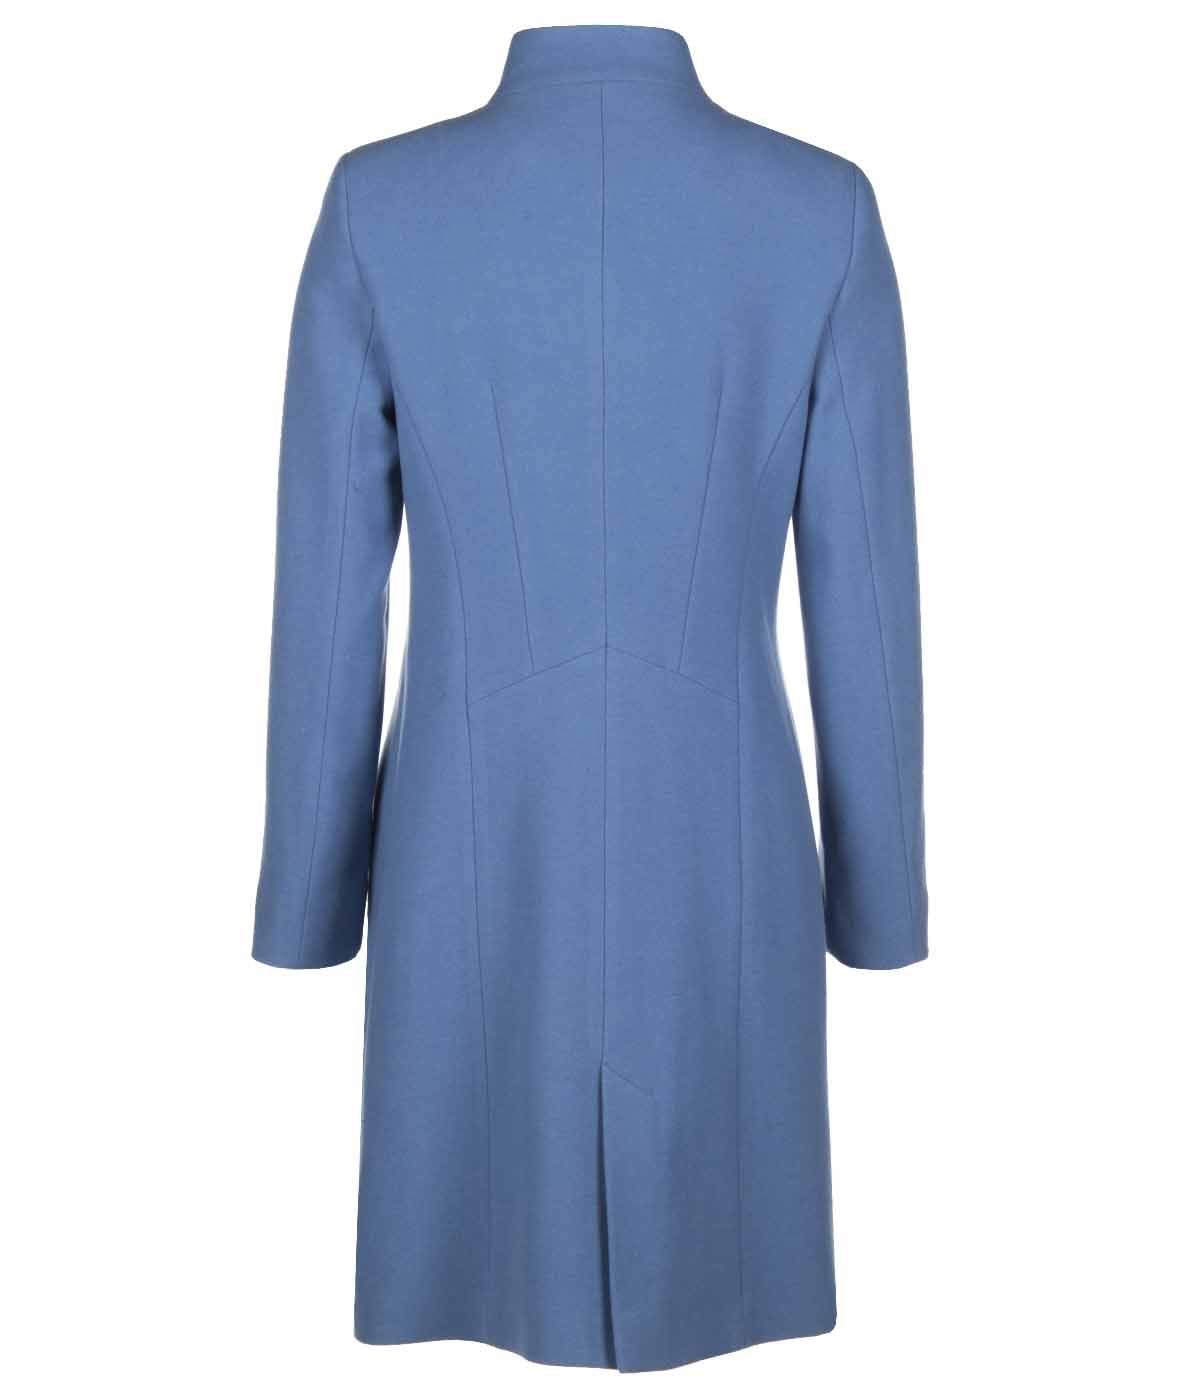 BLUE WOOL COAT WITH SIDED CONCEALED CLOSURE 1